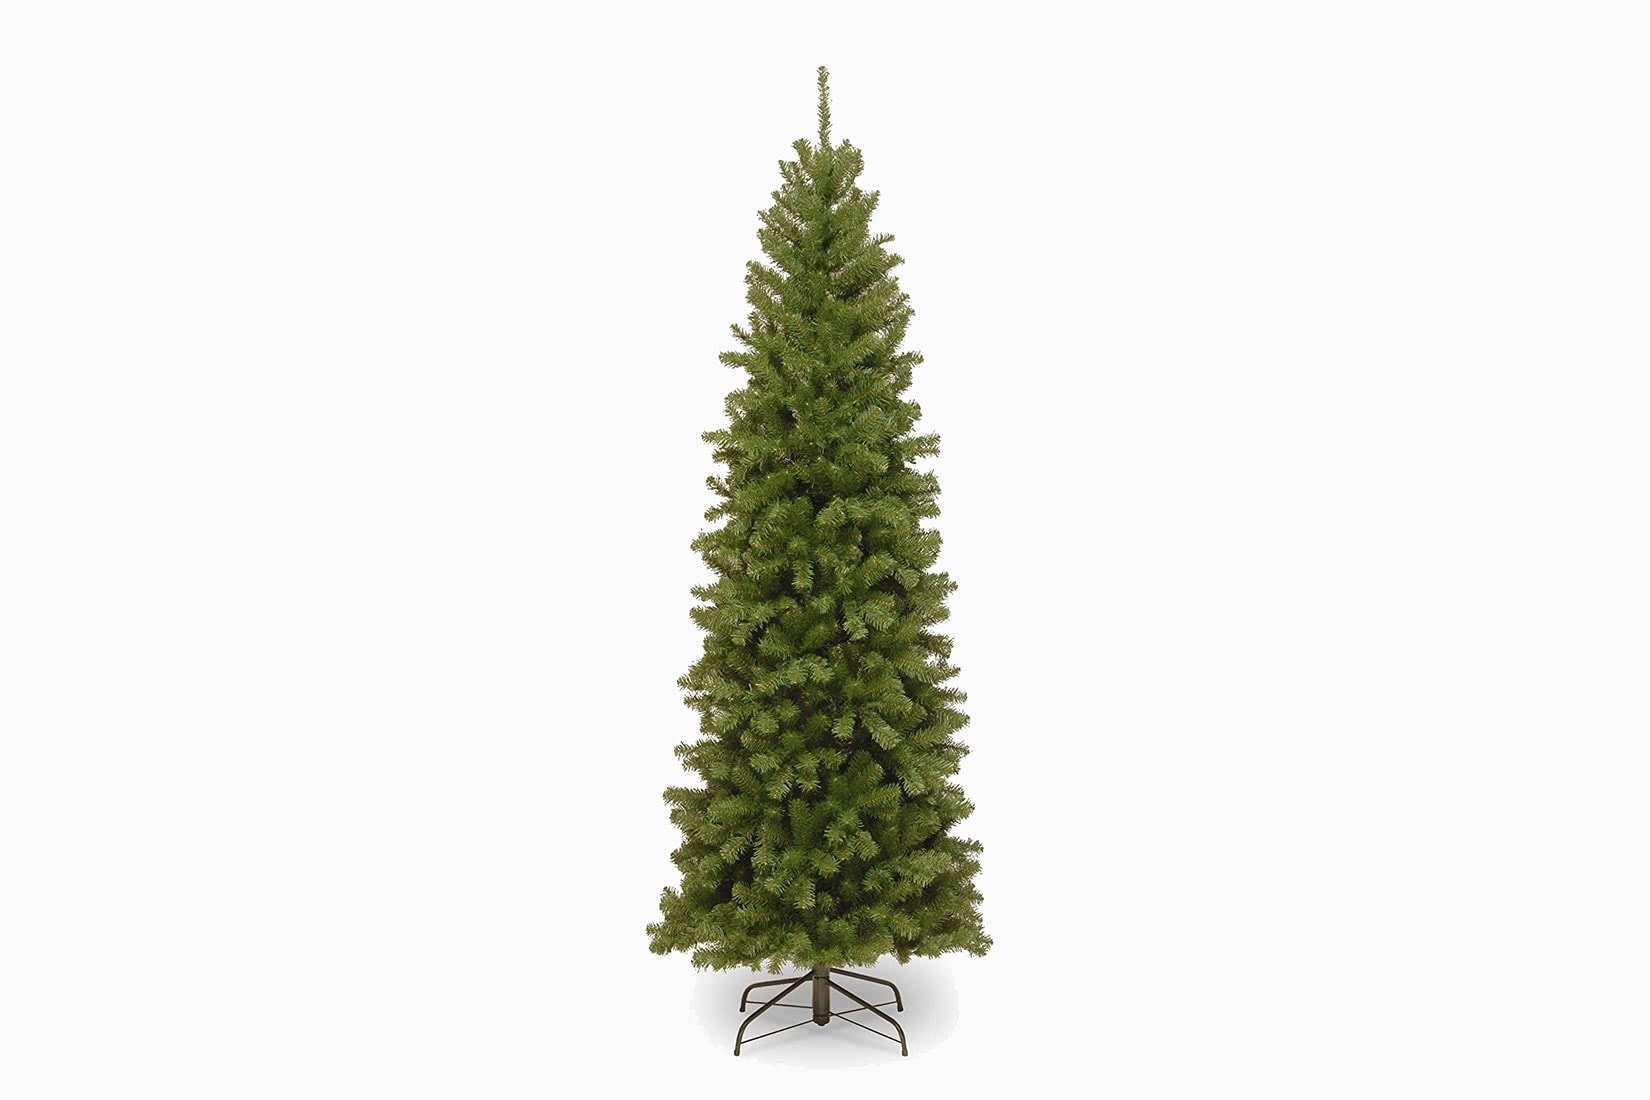 best artificial Christmas tree slim national tree company pencil review - Luxe Digital